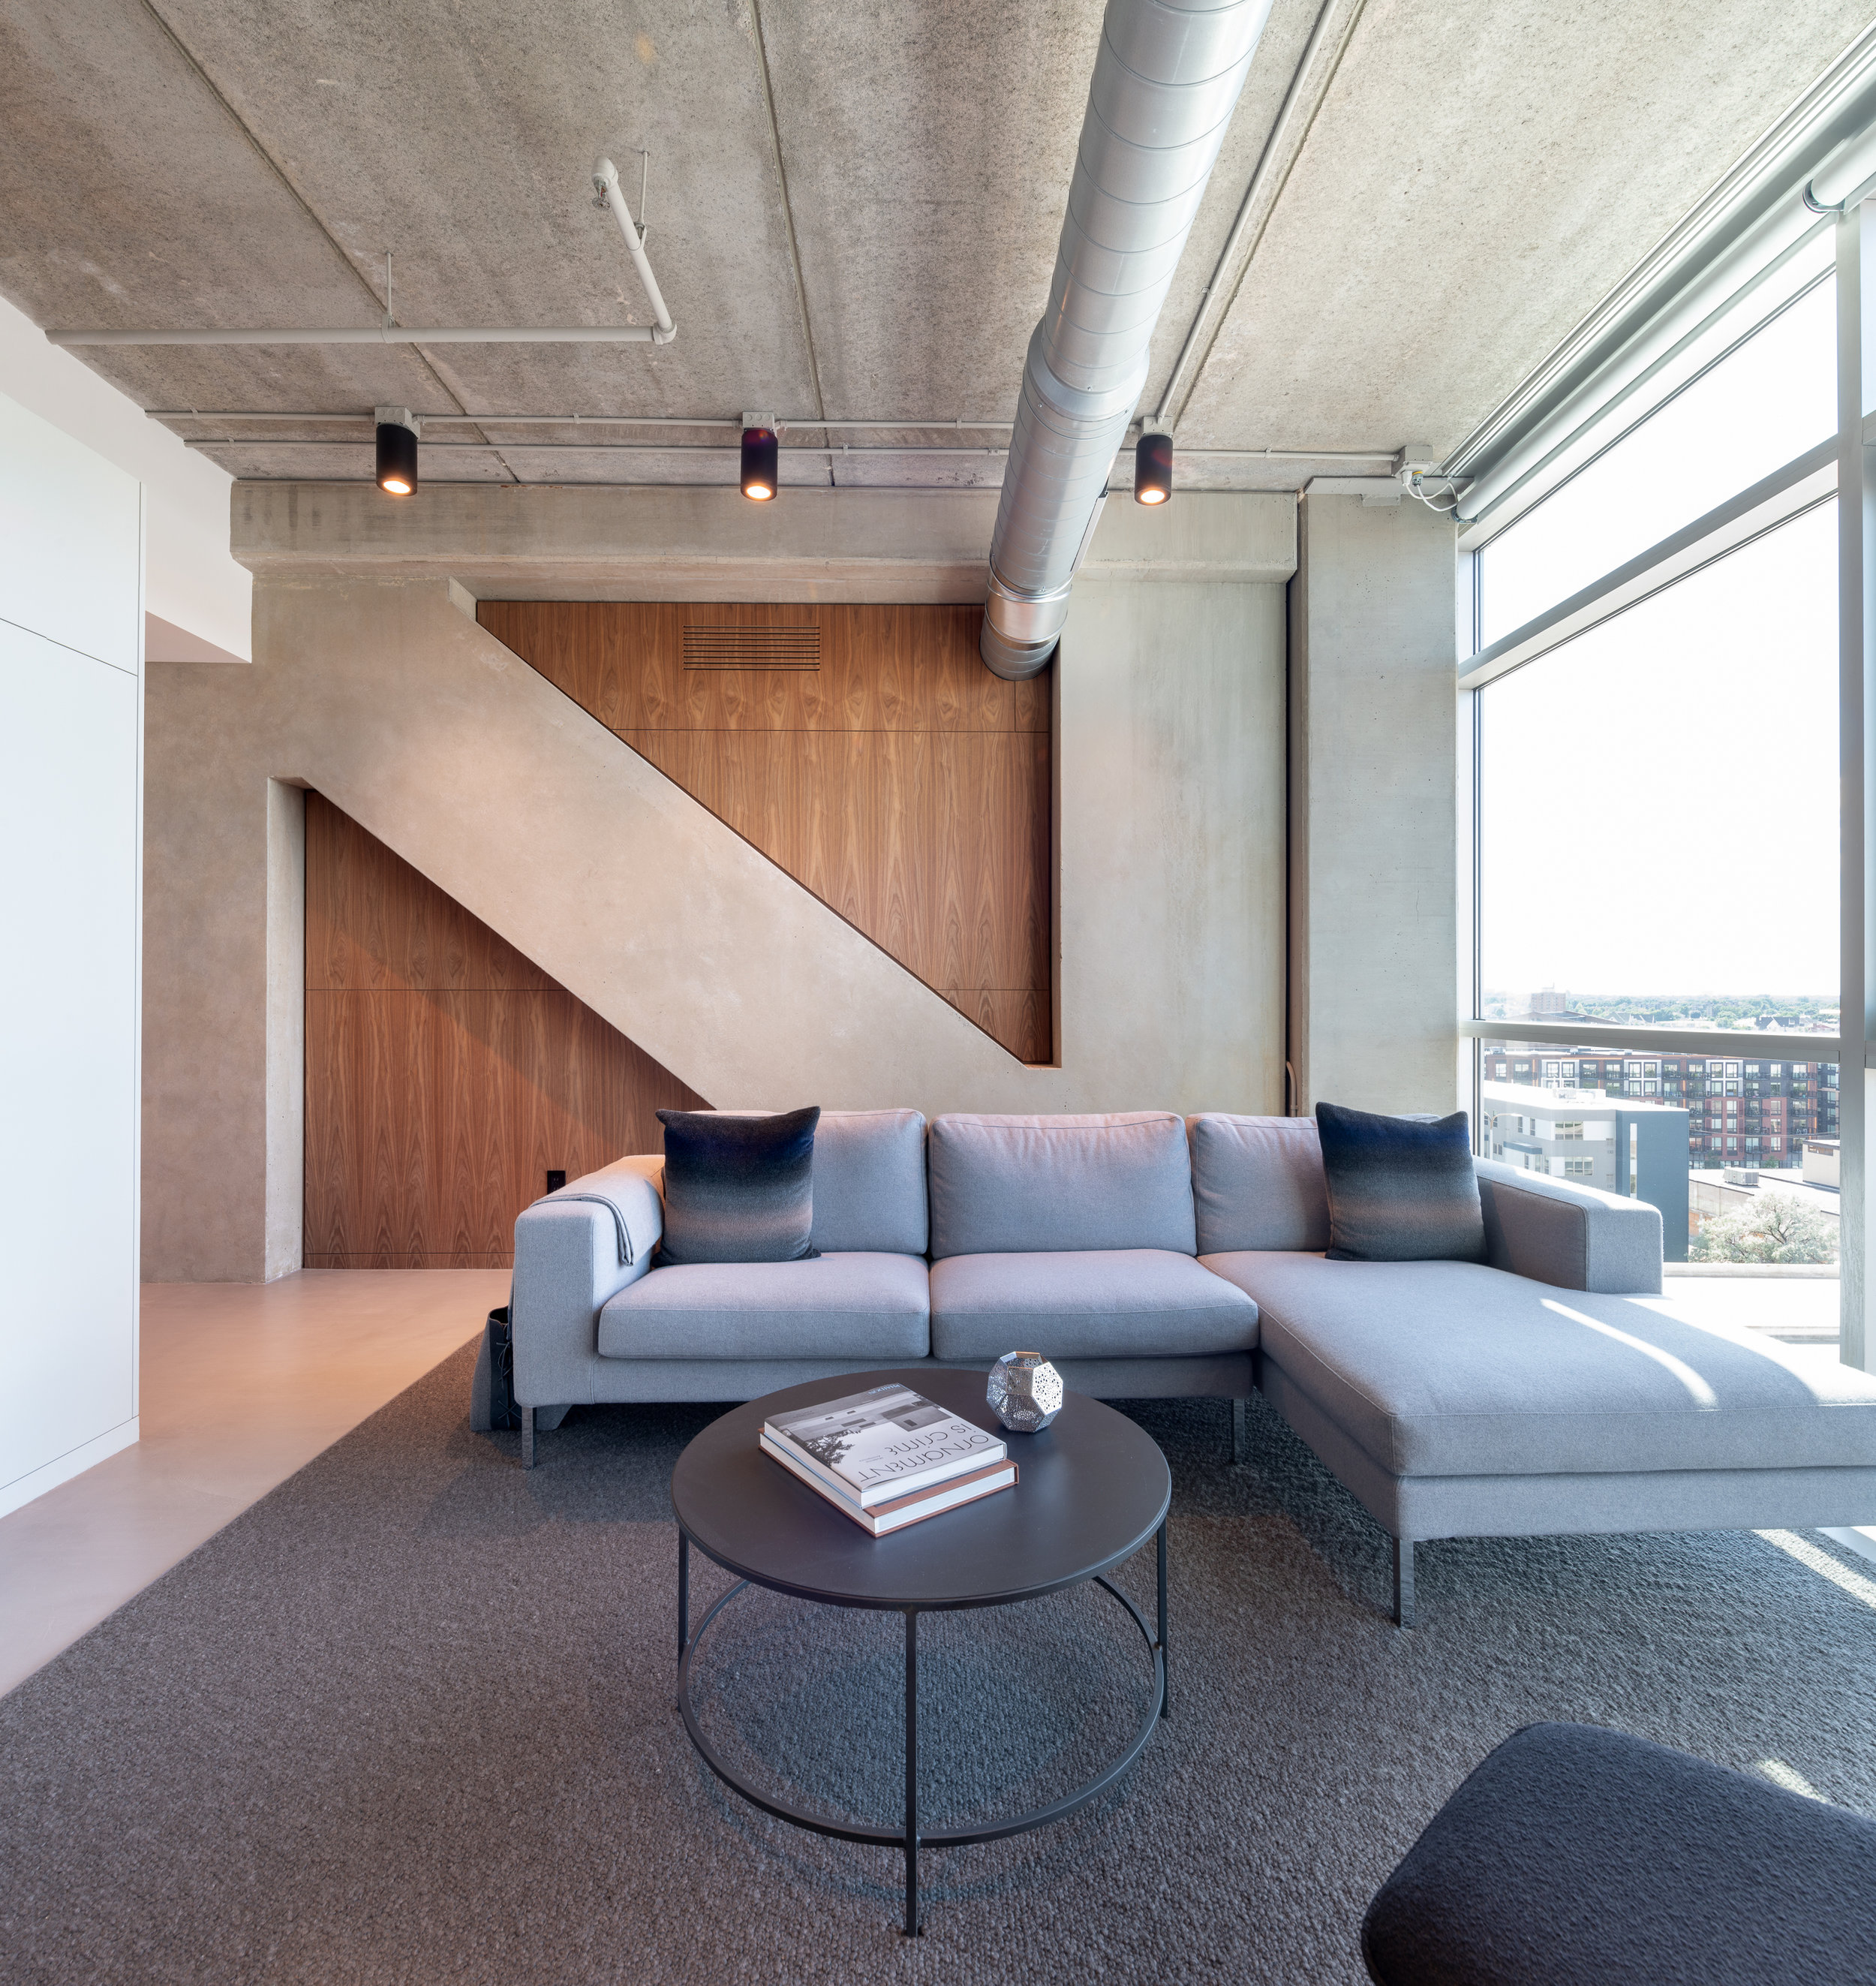 Modern den custom fitted wood panels designed by Christian Dean Architecture